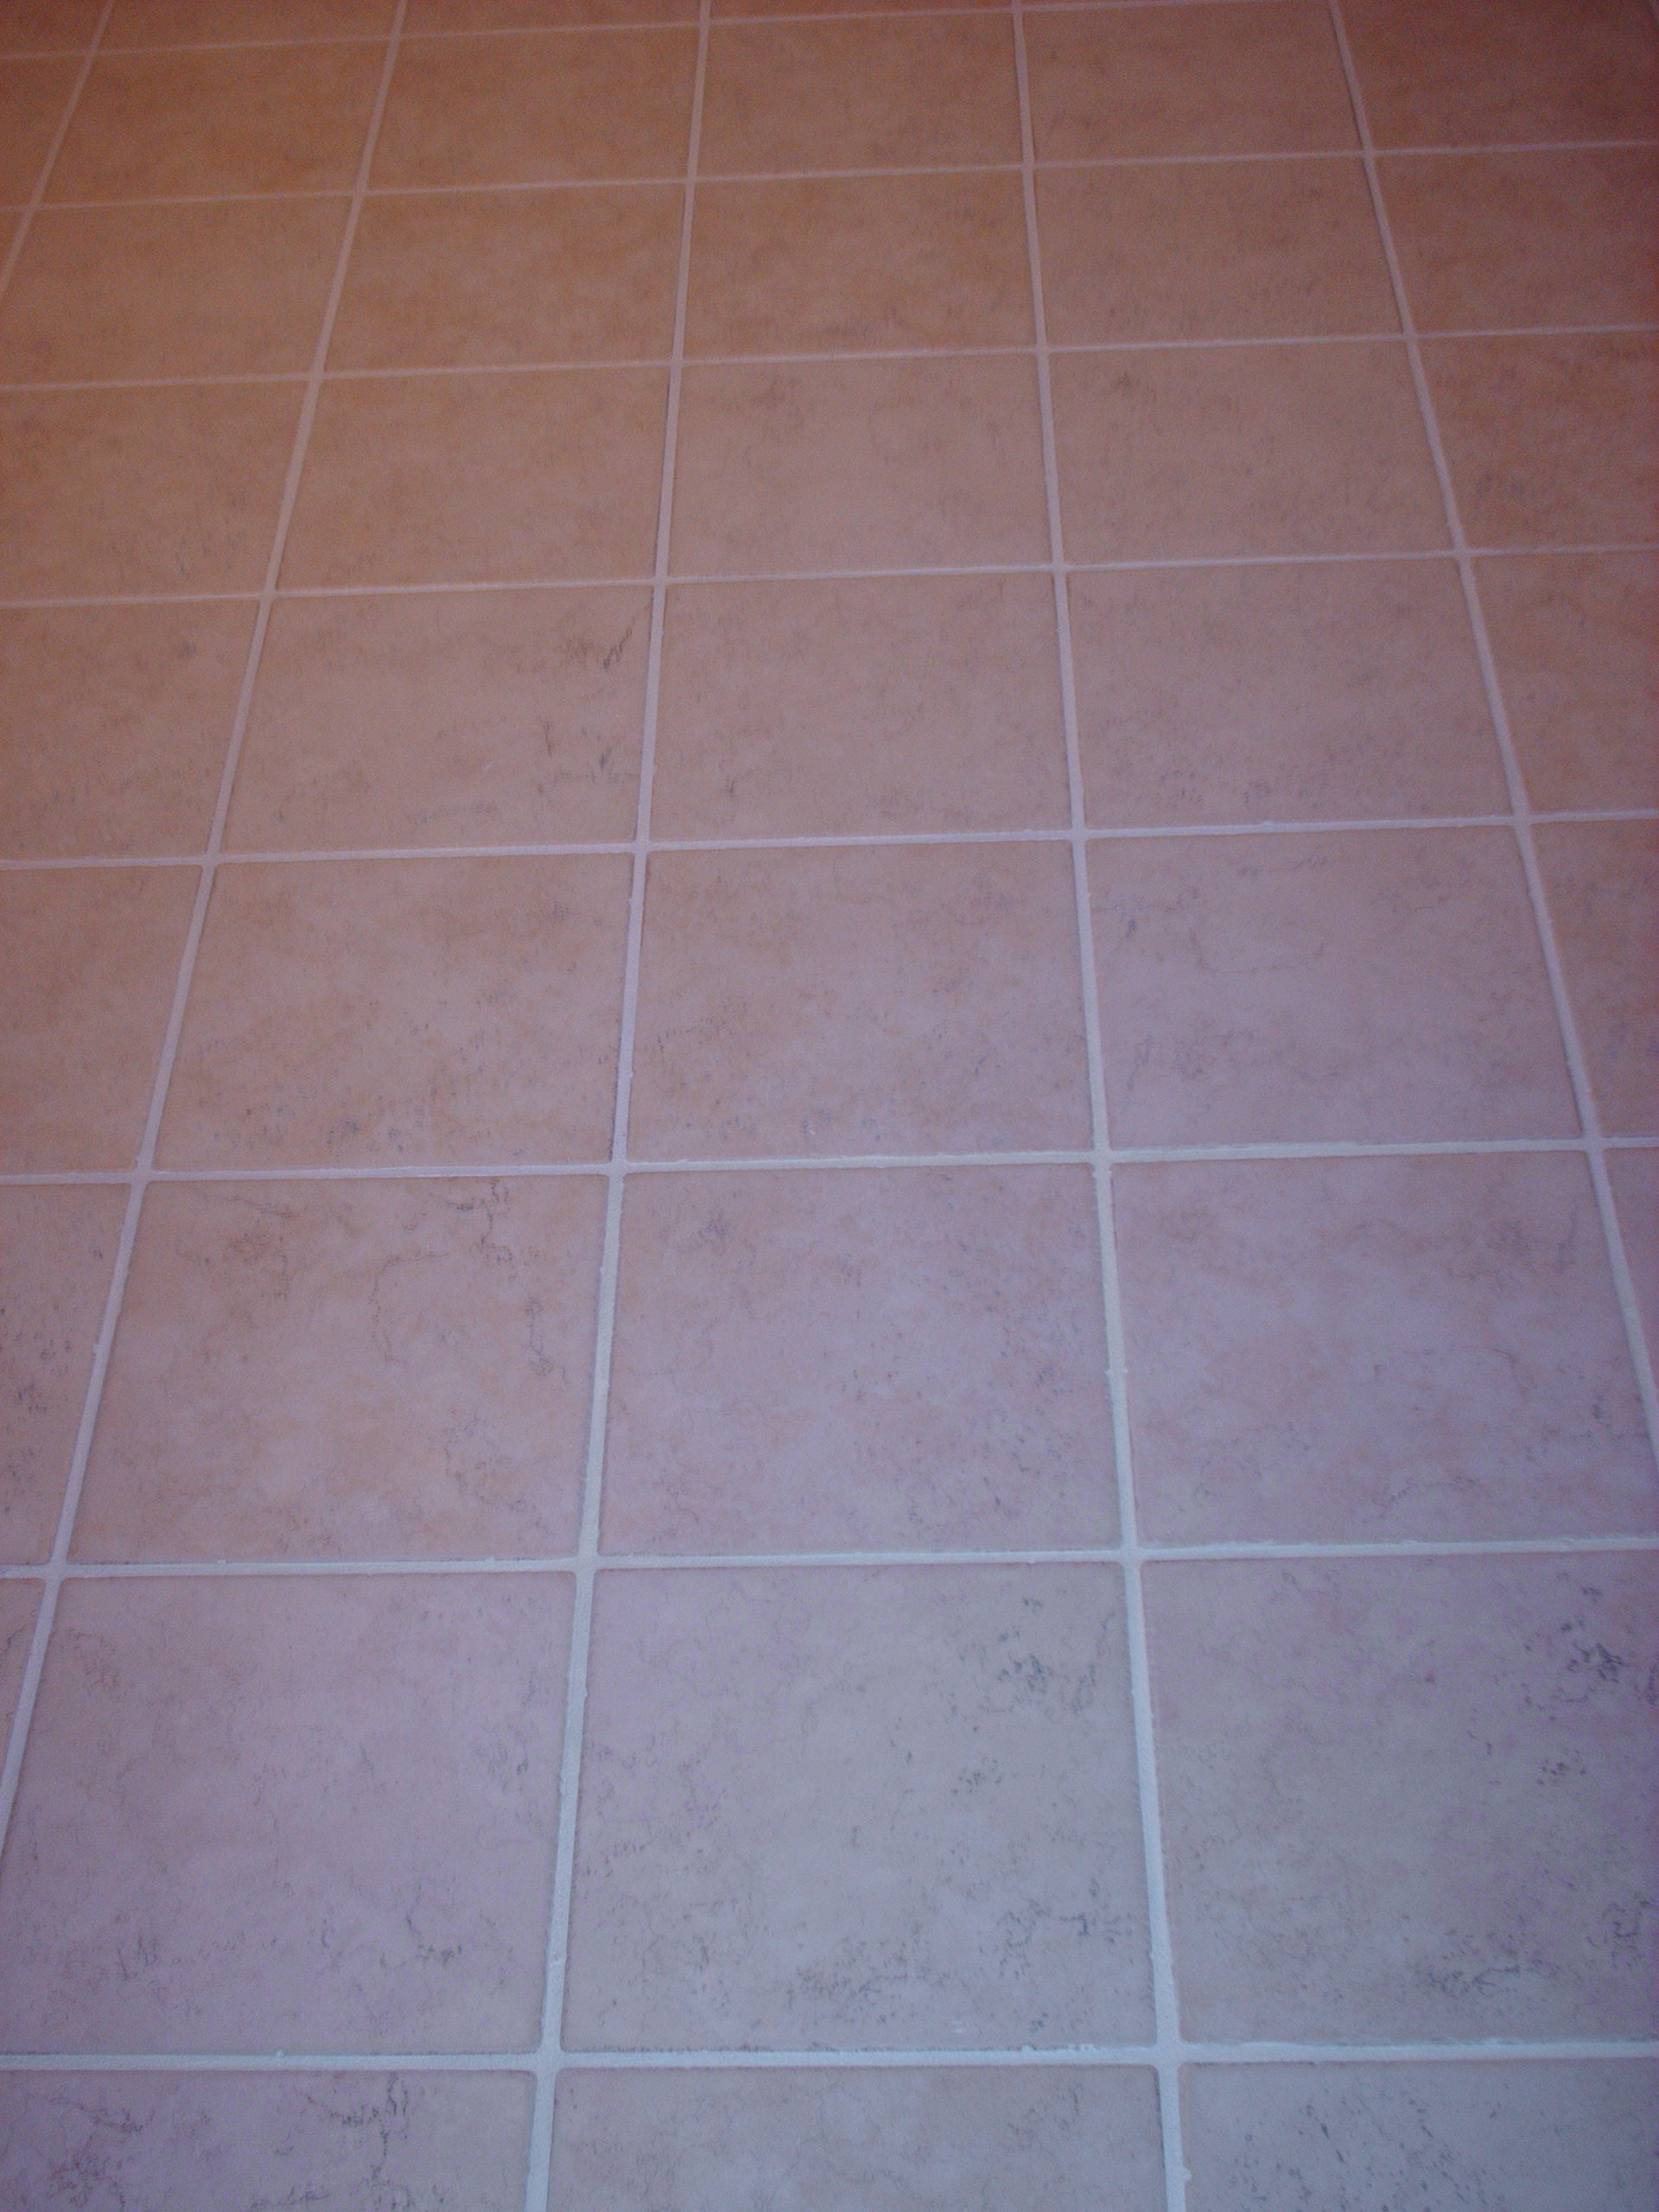 California Grout Repair